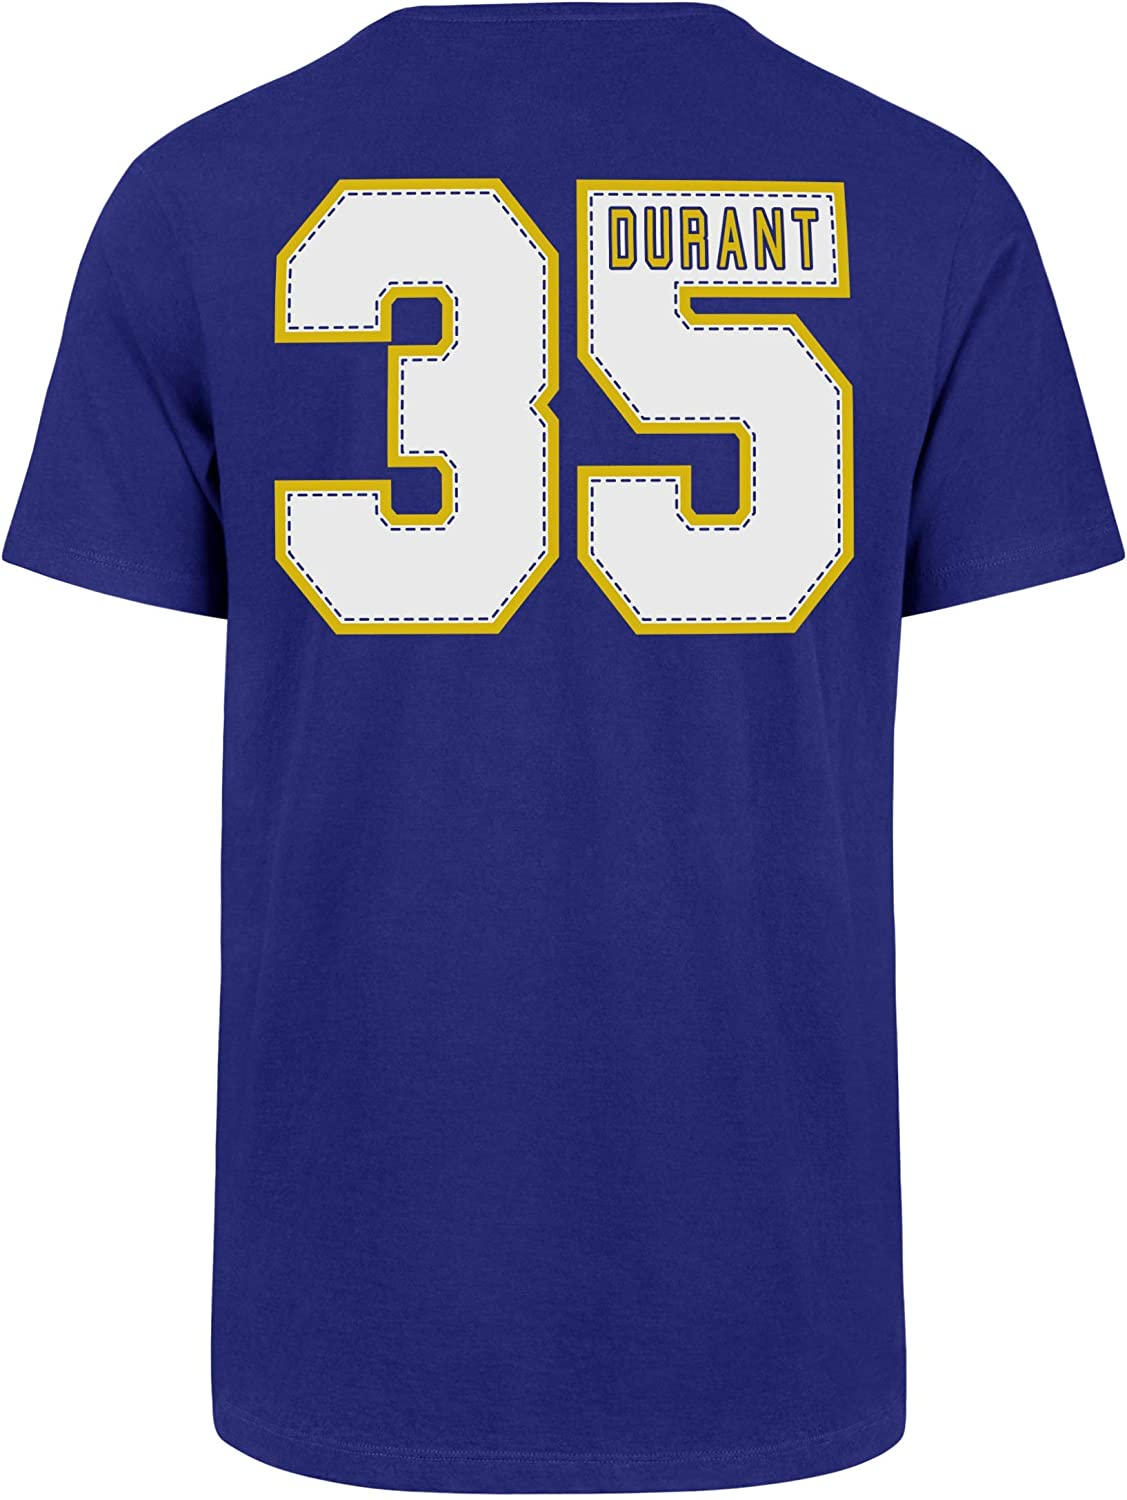 OTS mens Player Rival Tee NBA XX-Large Kevin Durant Royal Golden State Warriors